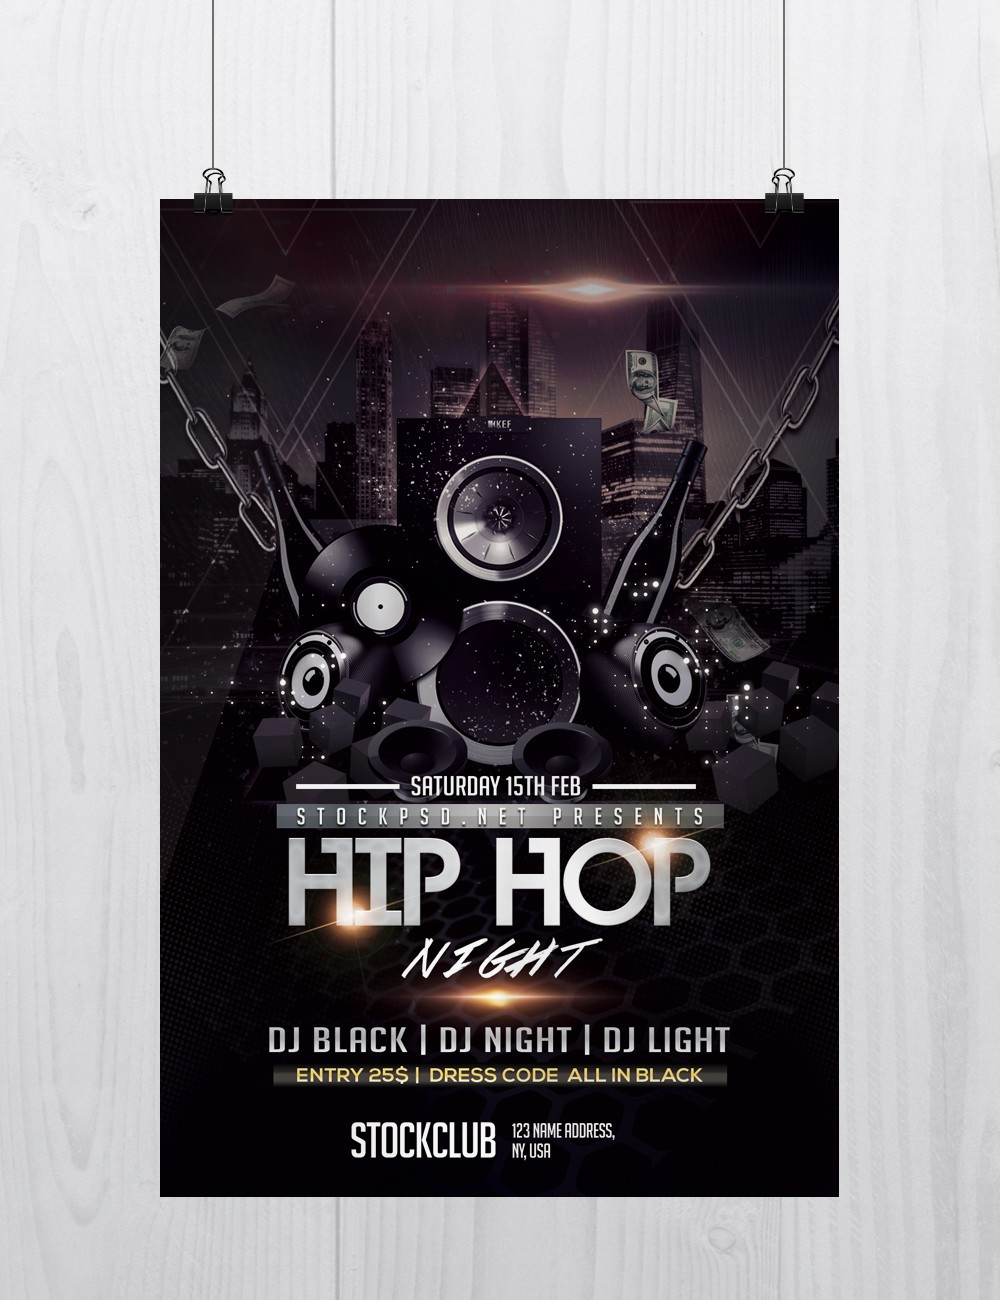 Hip Hop Music - Download Free PSD Flyer Template - Free PSD